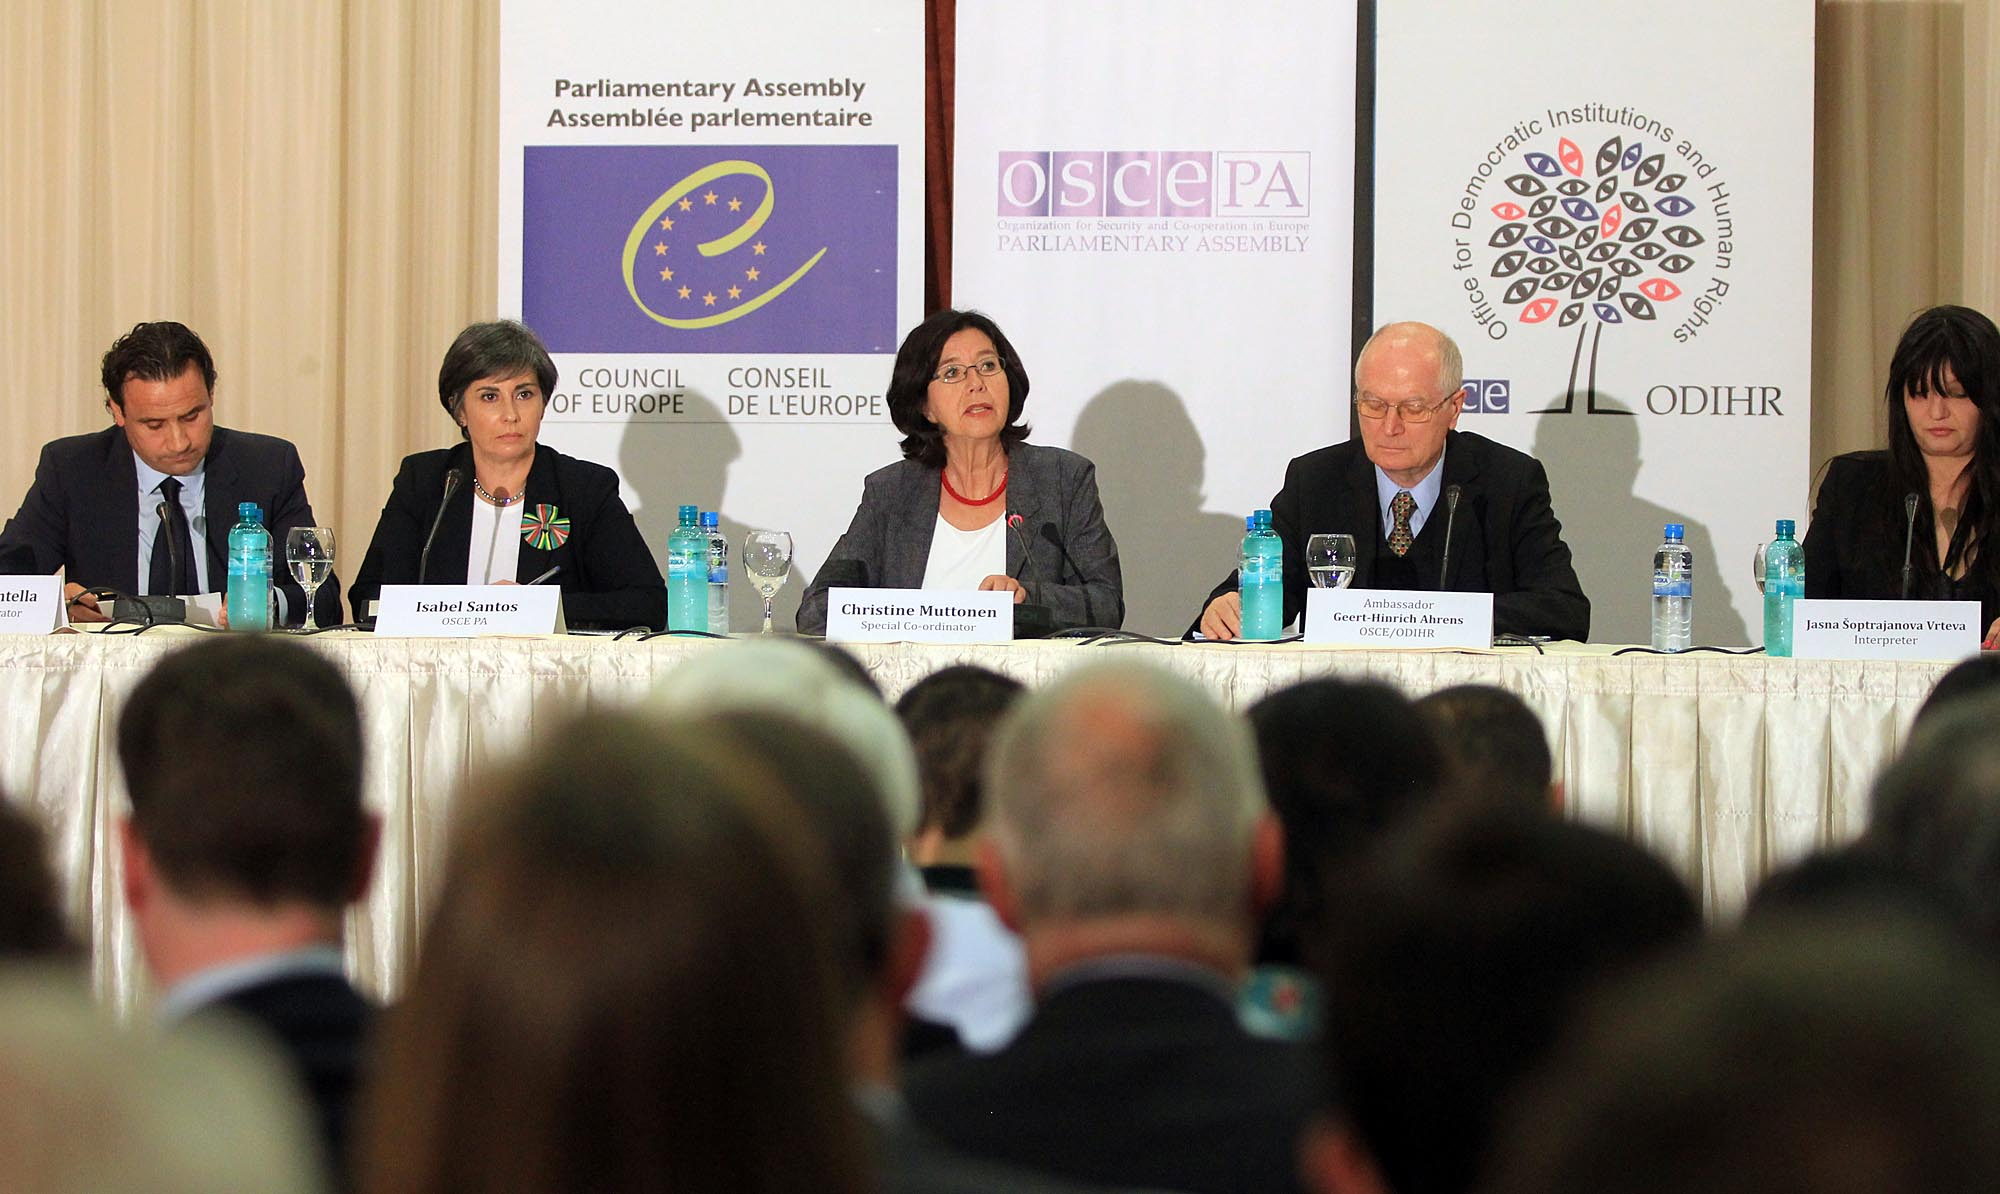 OSCE/ODIHR issues negative evaluations on the elections in FYR Macedonia